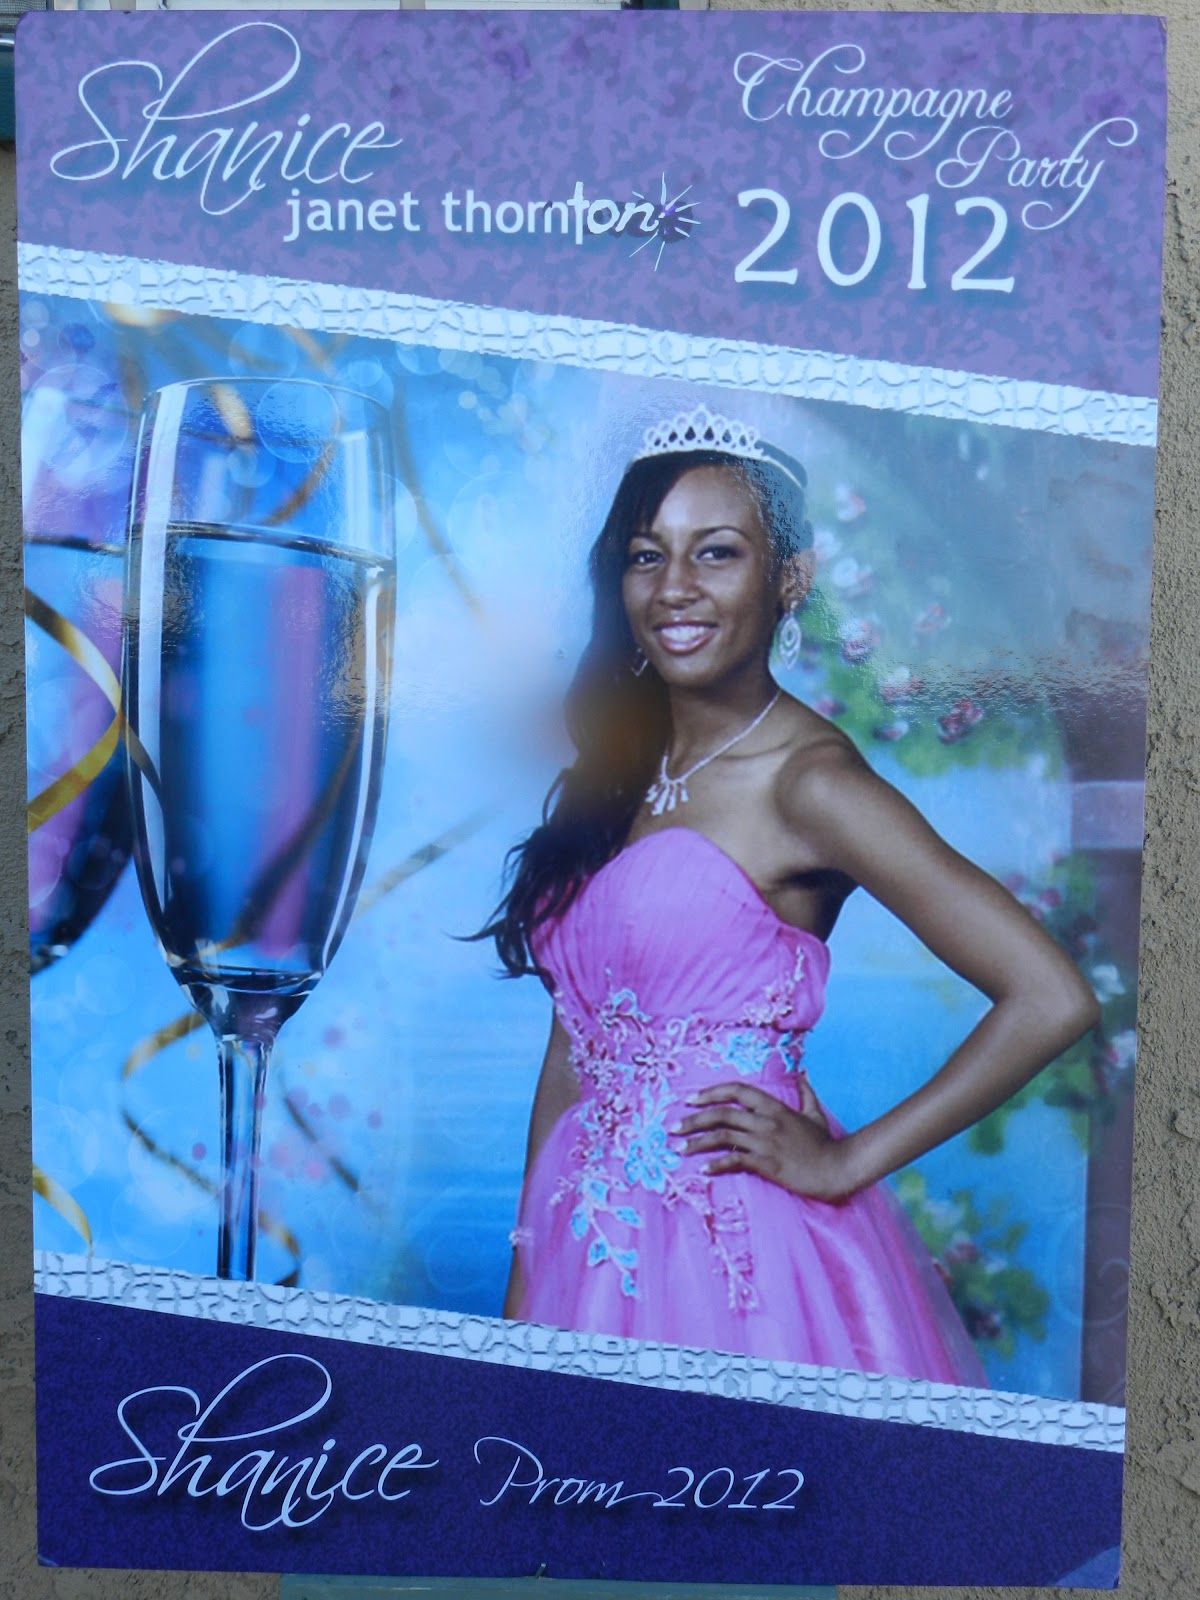 Platinum Touch Events Real Party Shanice S Champagne